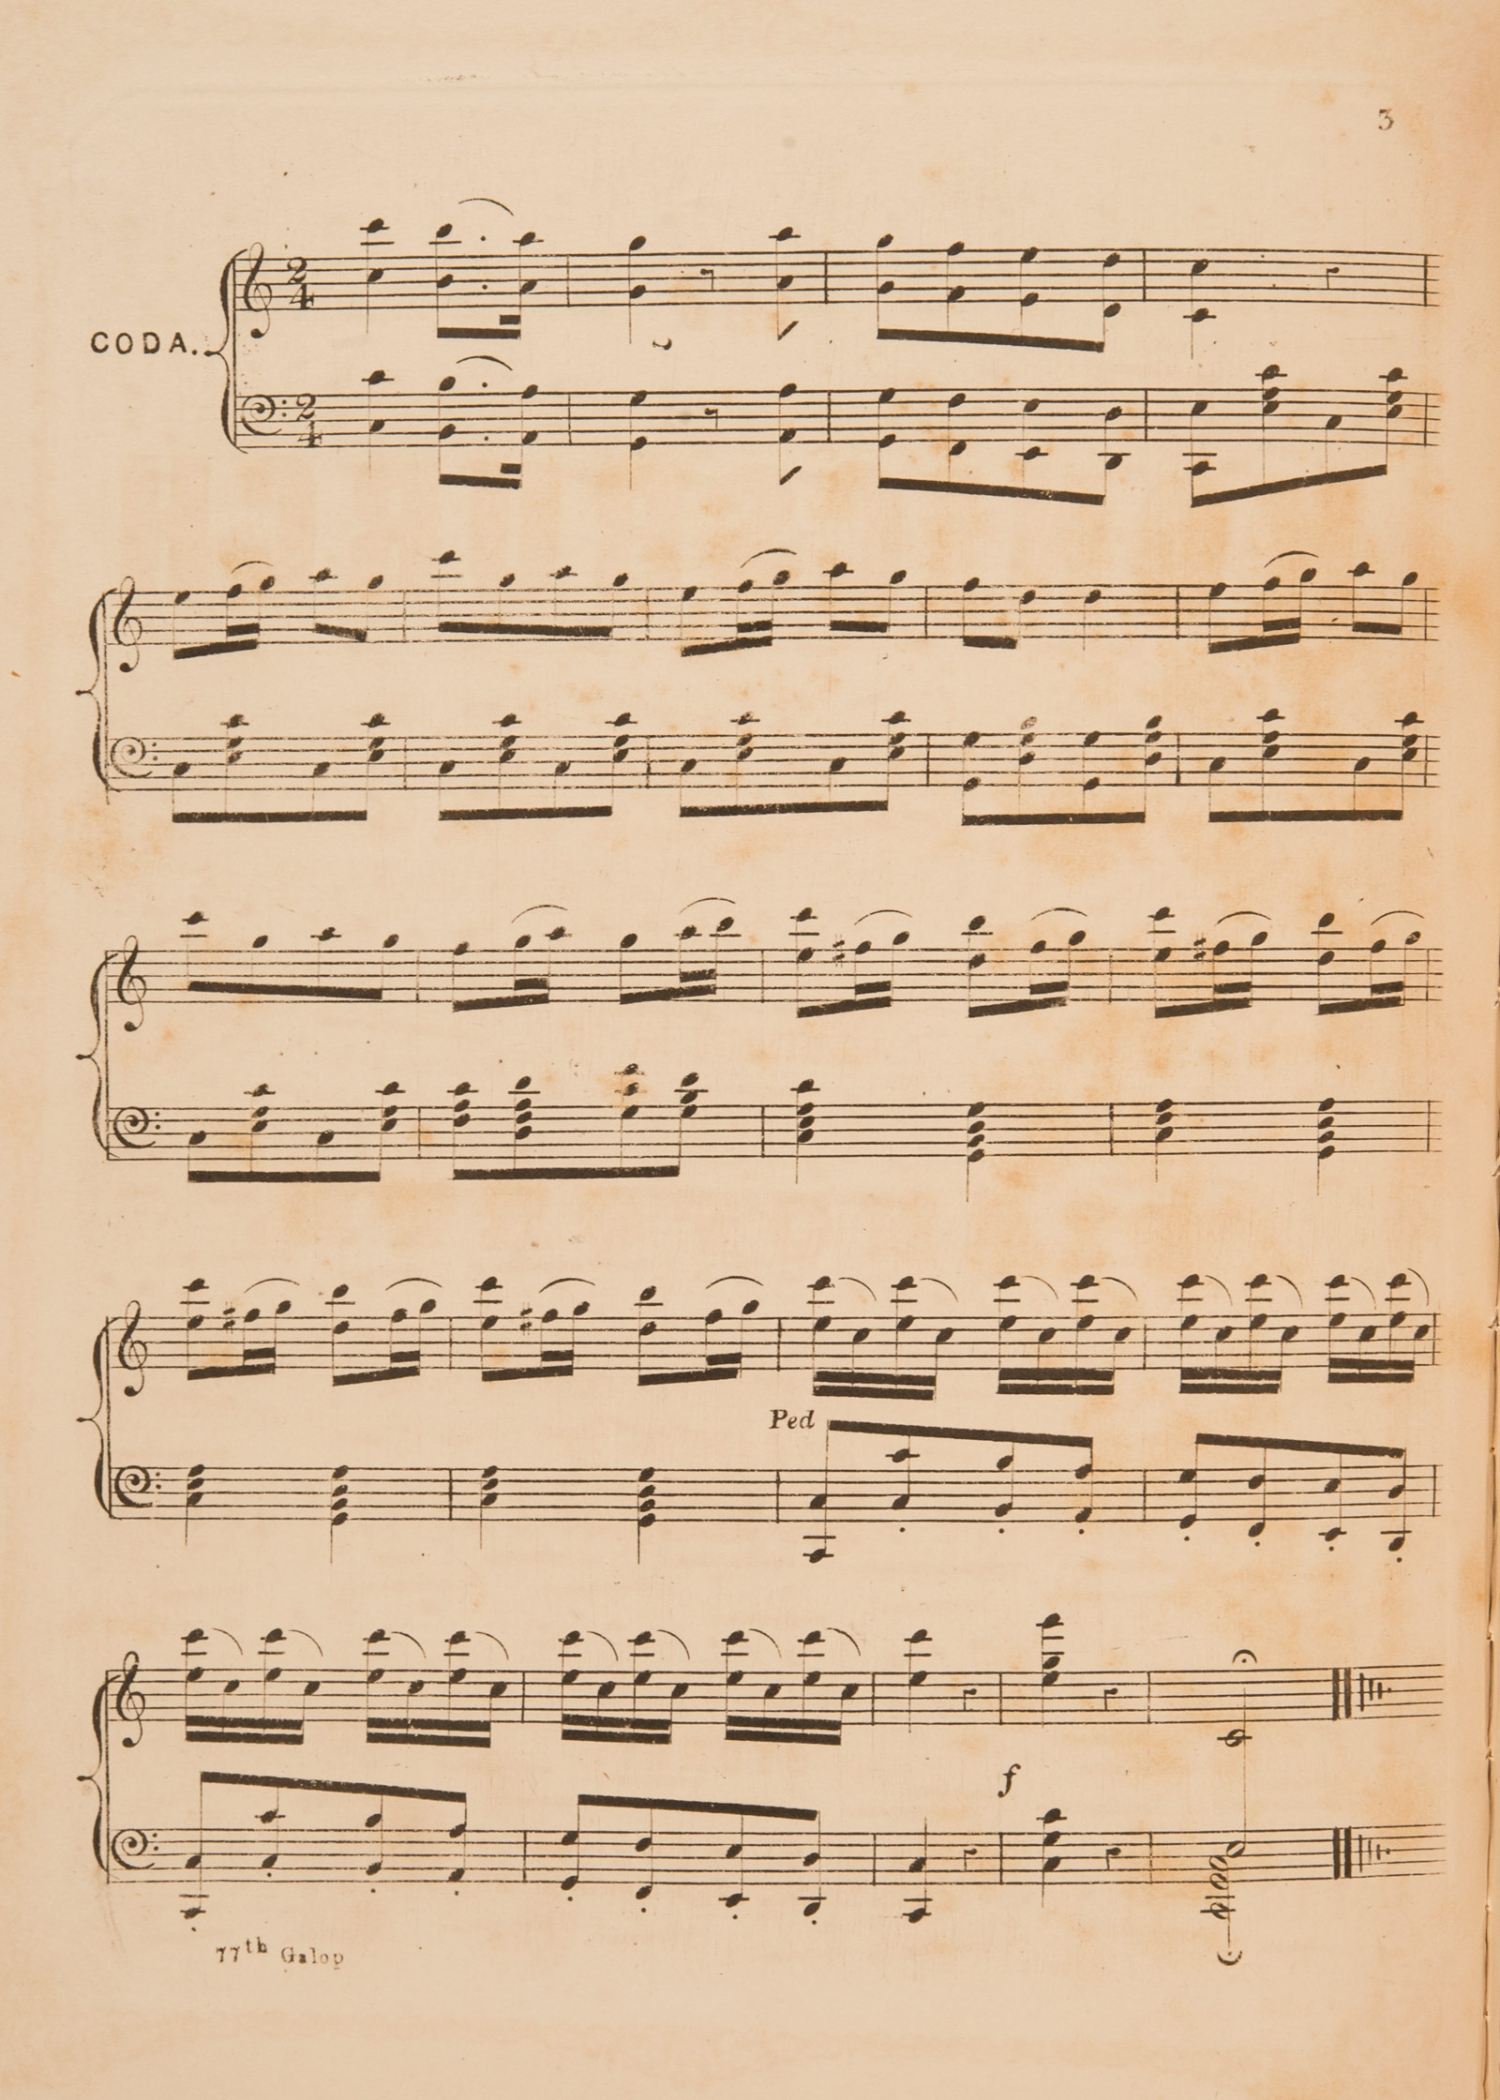 Sheet music, 'The 77th Galop', by P. Cavallini, page 3, published 1858